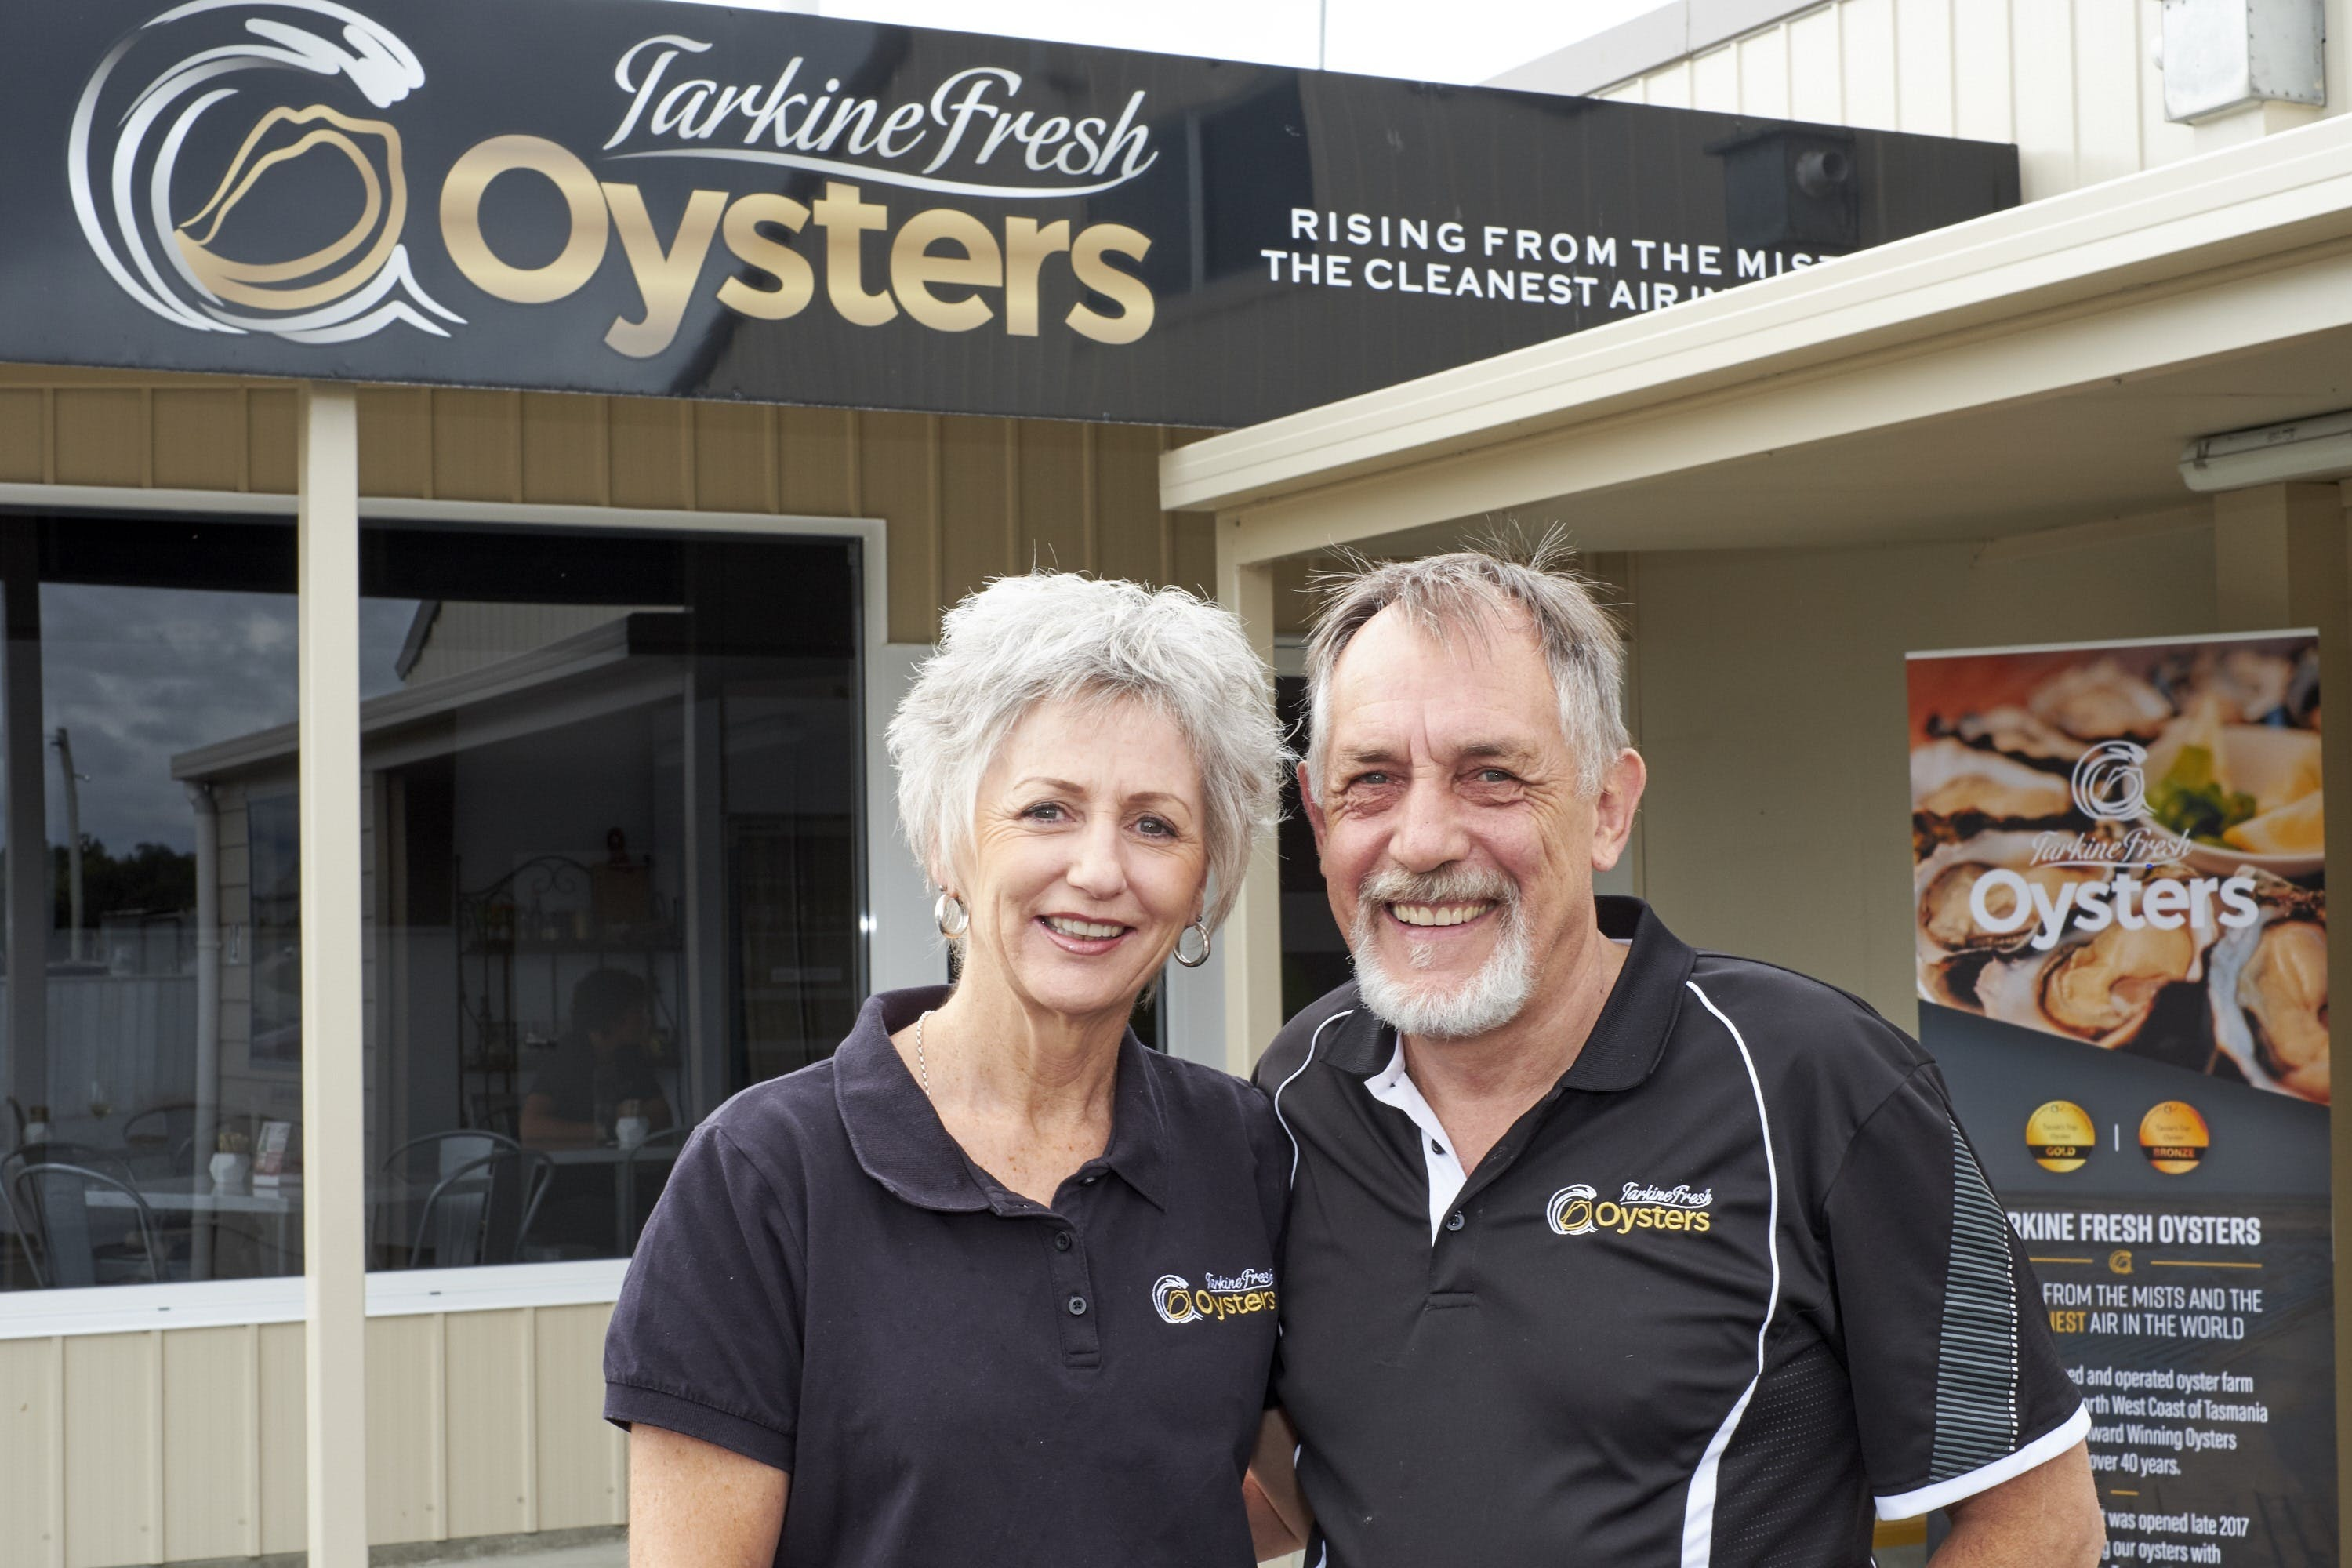 Tarkine Fresh Oysters - Food Delivery Shop